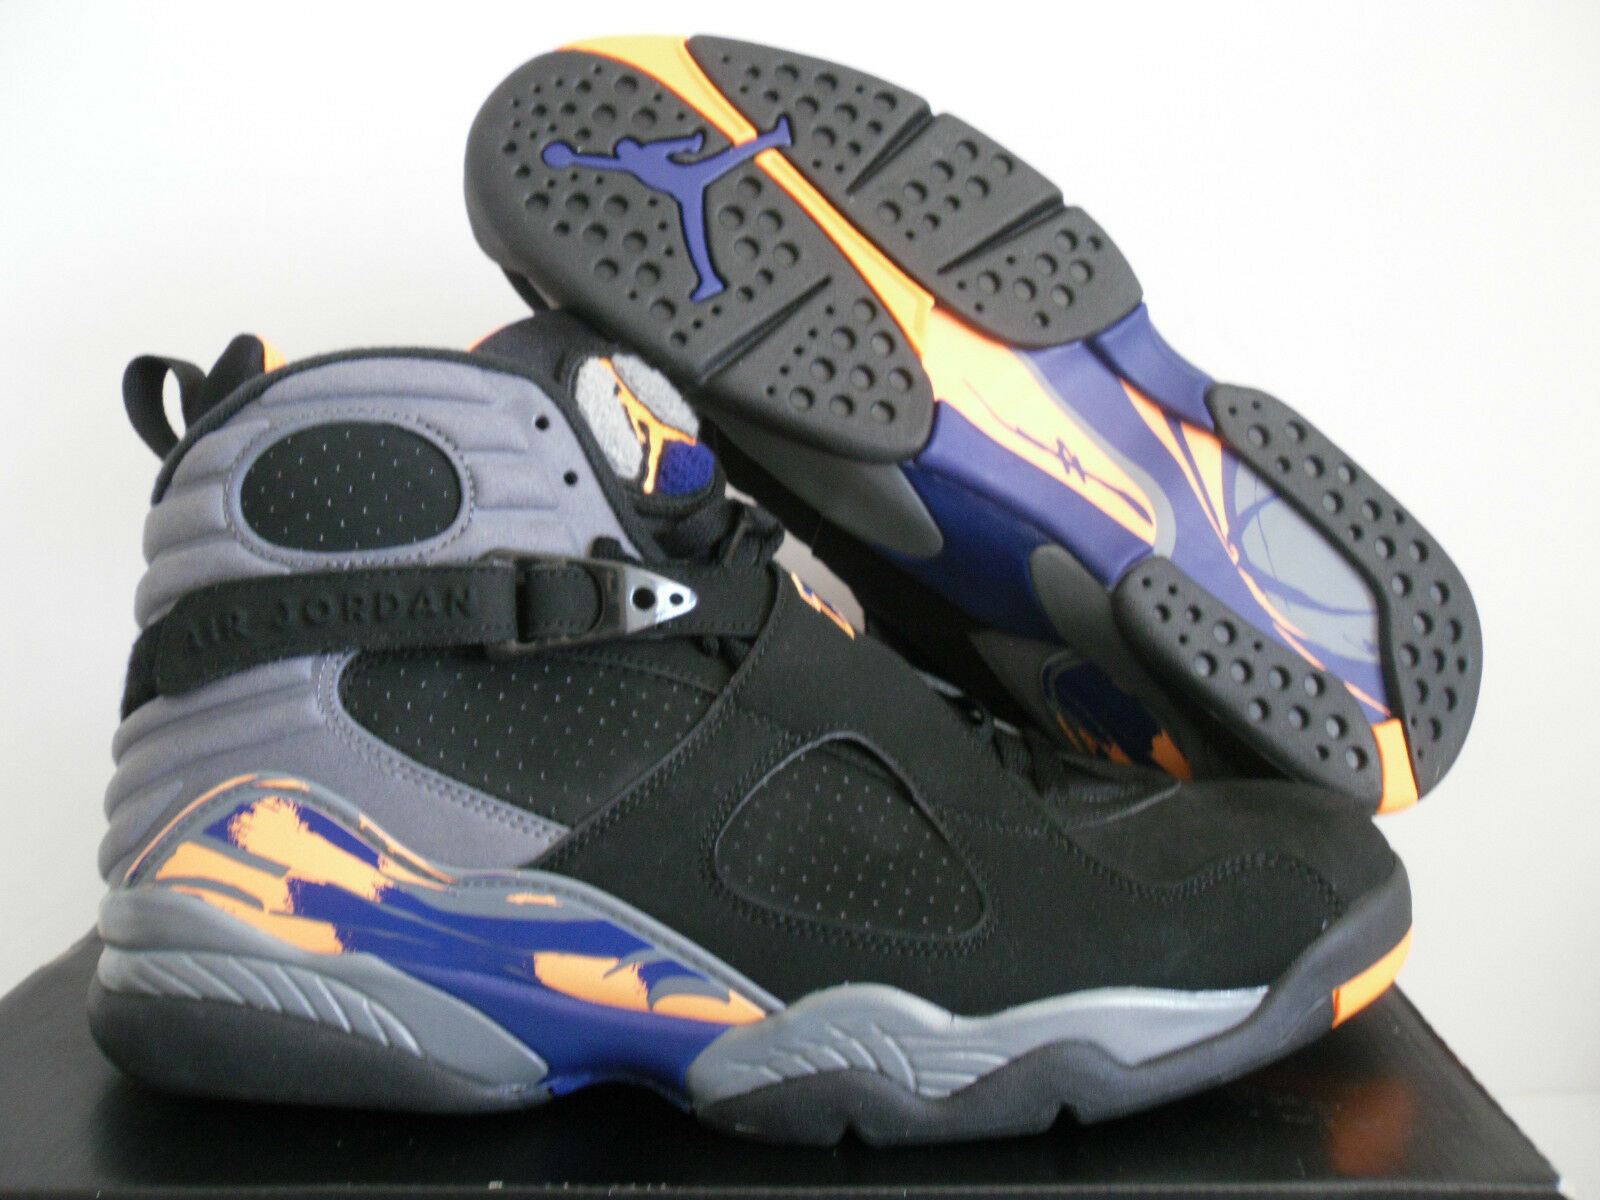 NIKE AIR JORDAN 8 gris RETRO Noir -BRIGHT CITRUS- gris 8 -ROYAL Bleu SZ 14 84d2e2